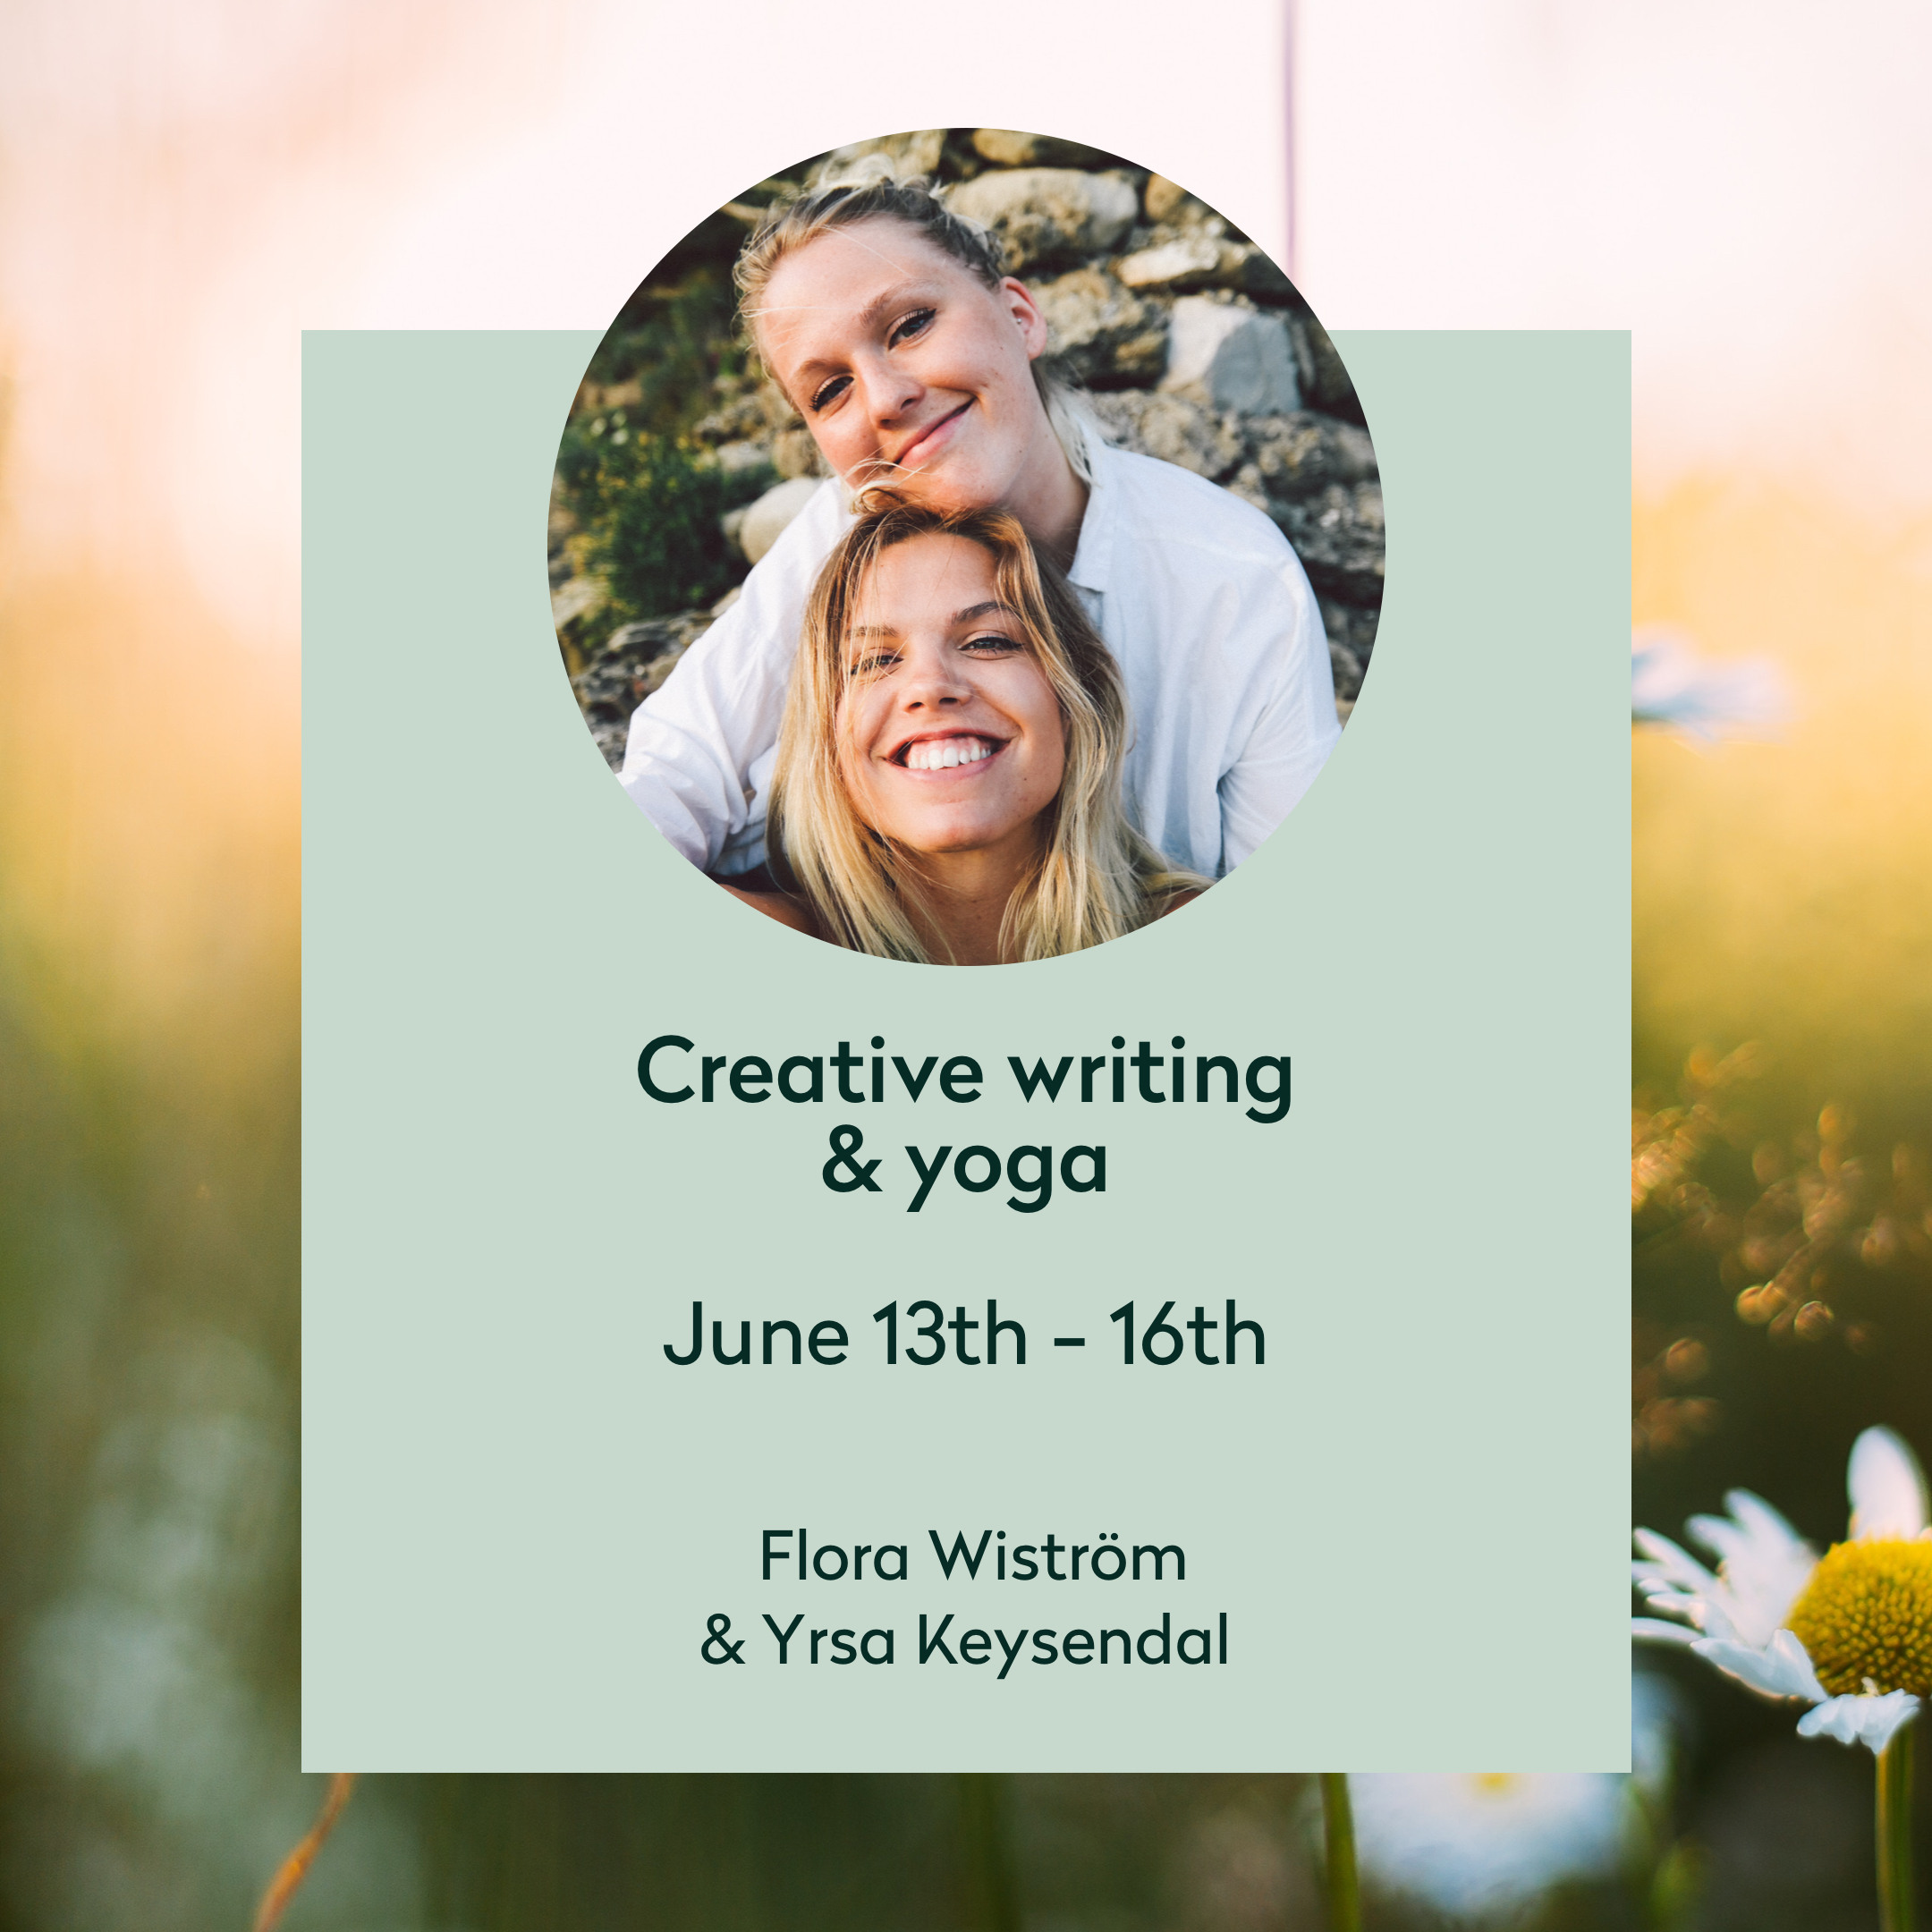 Creative writing & yoga - June - Are you curios about exploring your writing? For the 4th time, we invite our 2 friends (and authors) Yrsa Keysendal and Flora Wiström, to co-host a creative retreat where we mix creative writing with yoga and meditation.Find more info here (in Swedish)